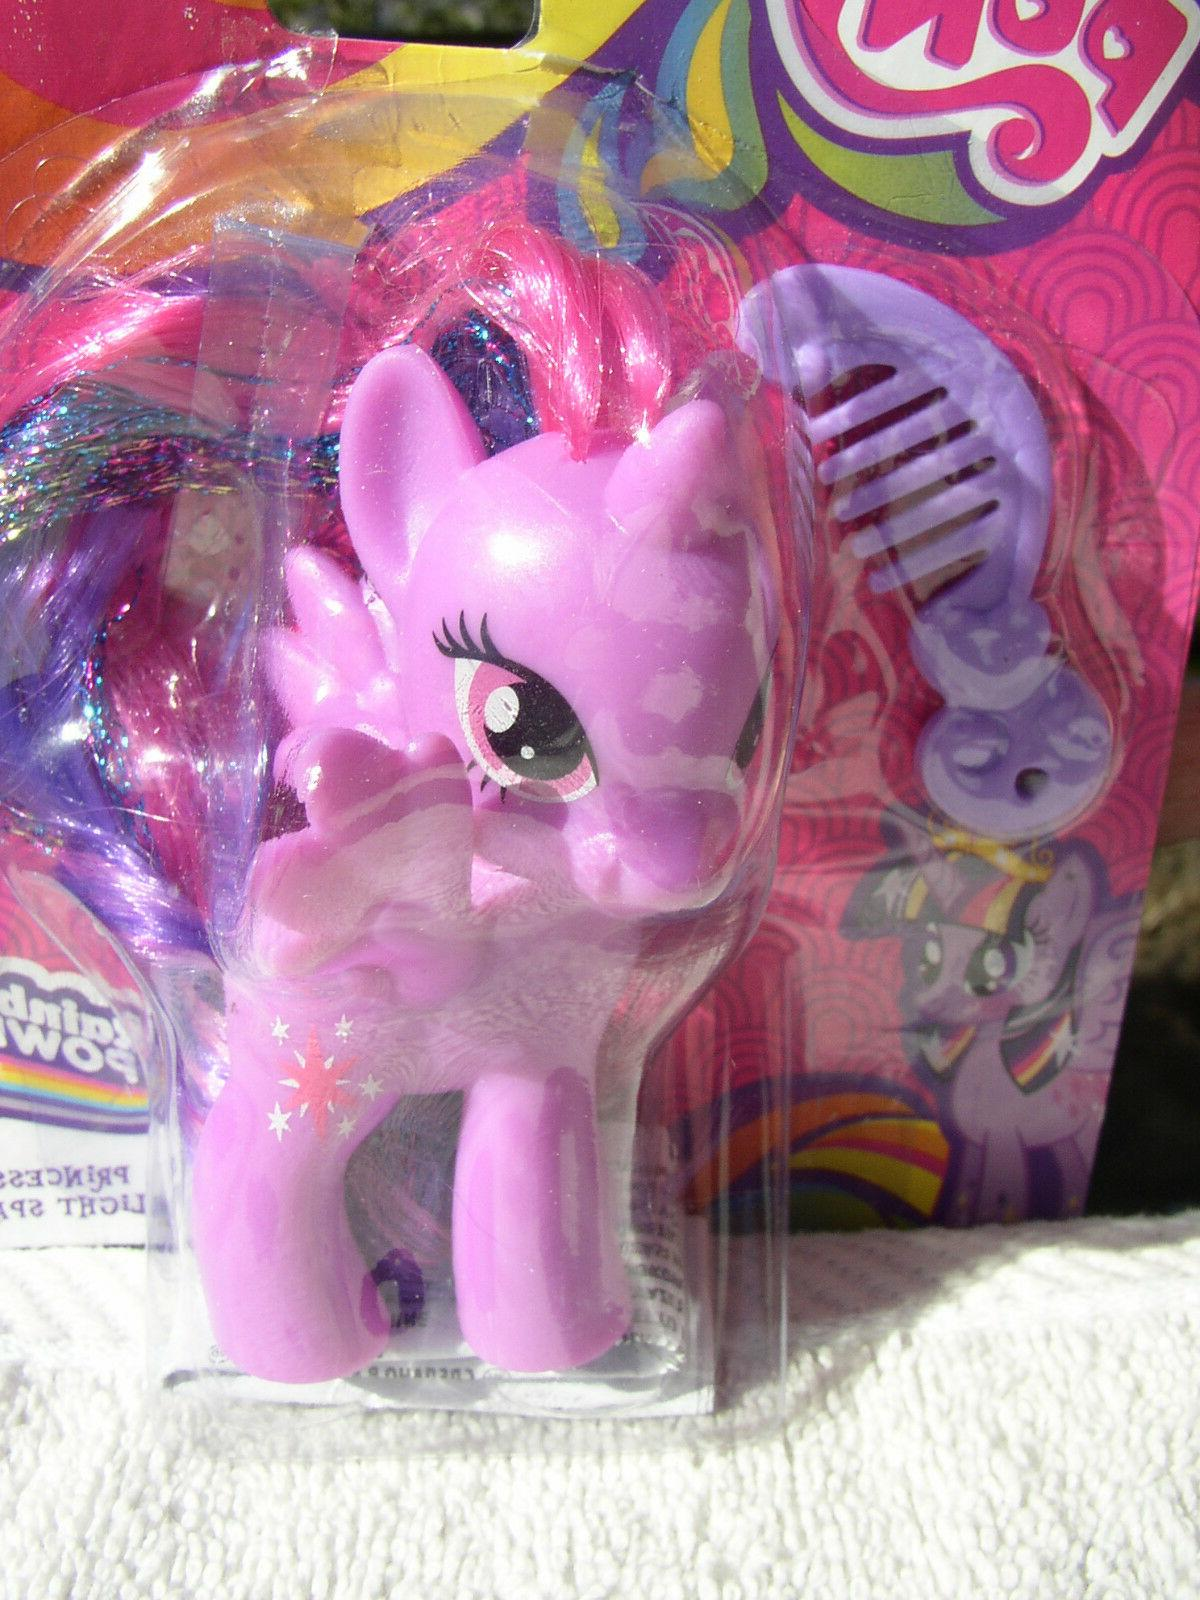 2013 MY LITTLE PONY TWIGHLIGHT SPARKLE IN PKG!